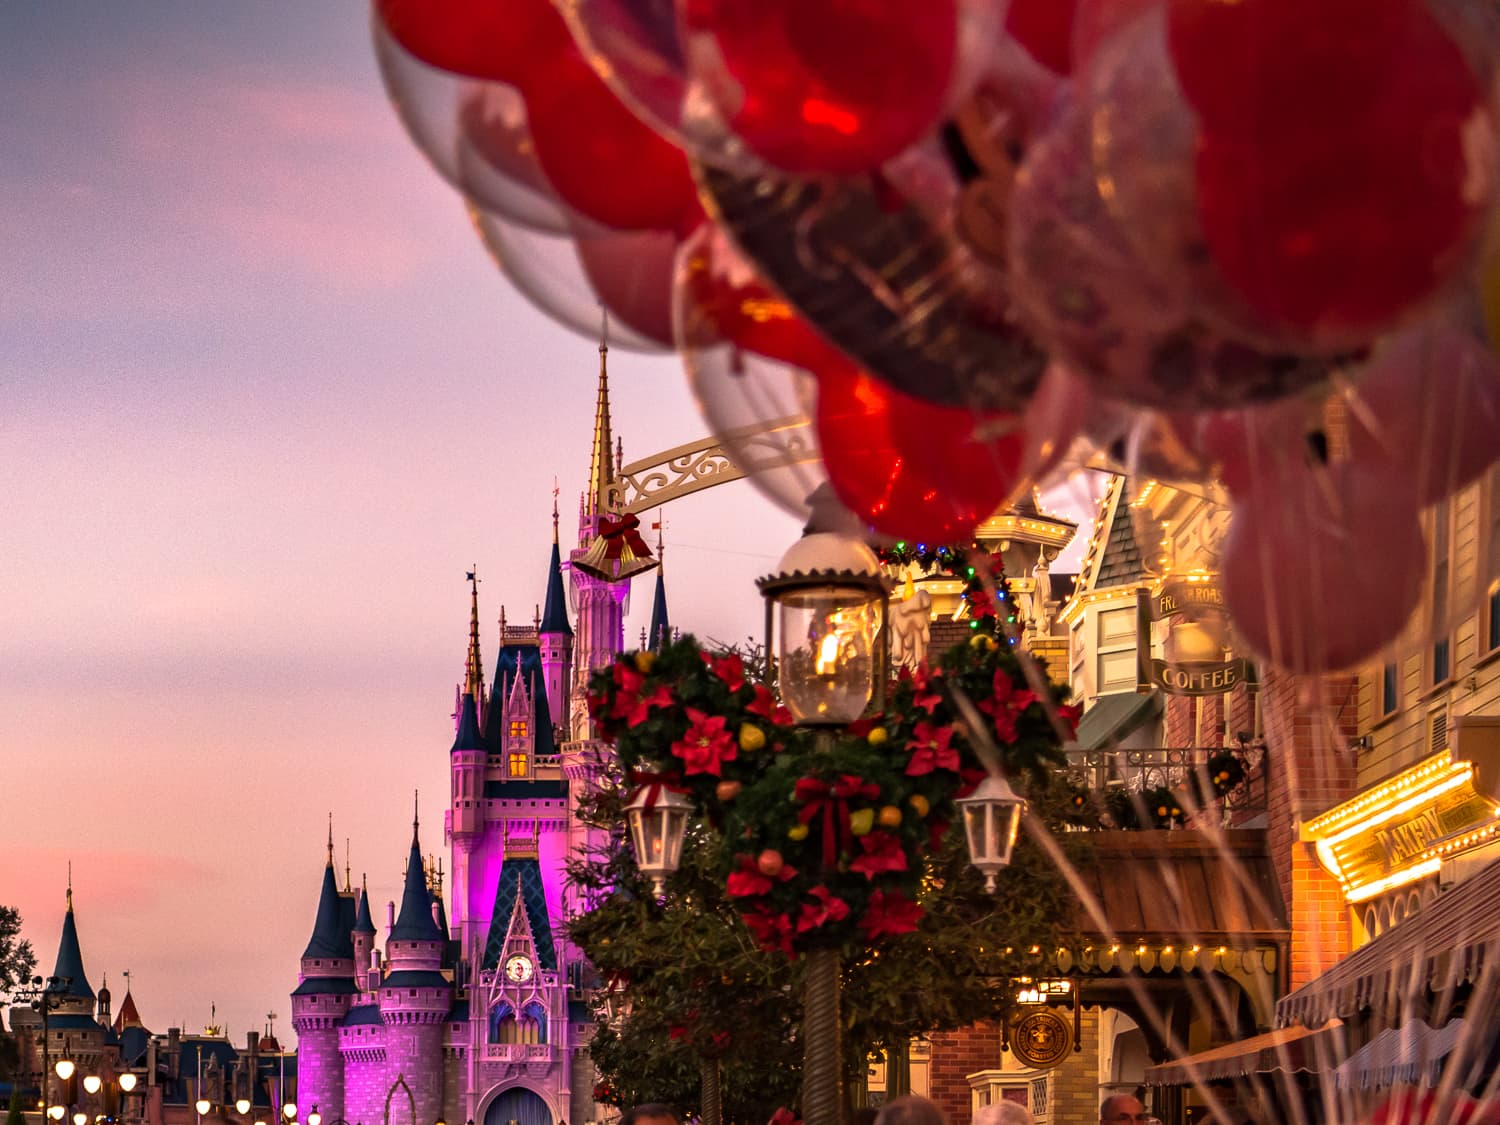 Ballons and Christmas decorations in front of the cinderella castle at magic kingdom.